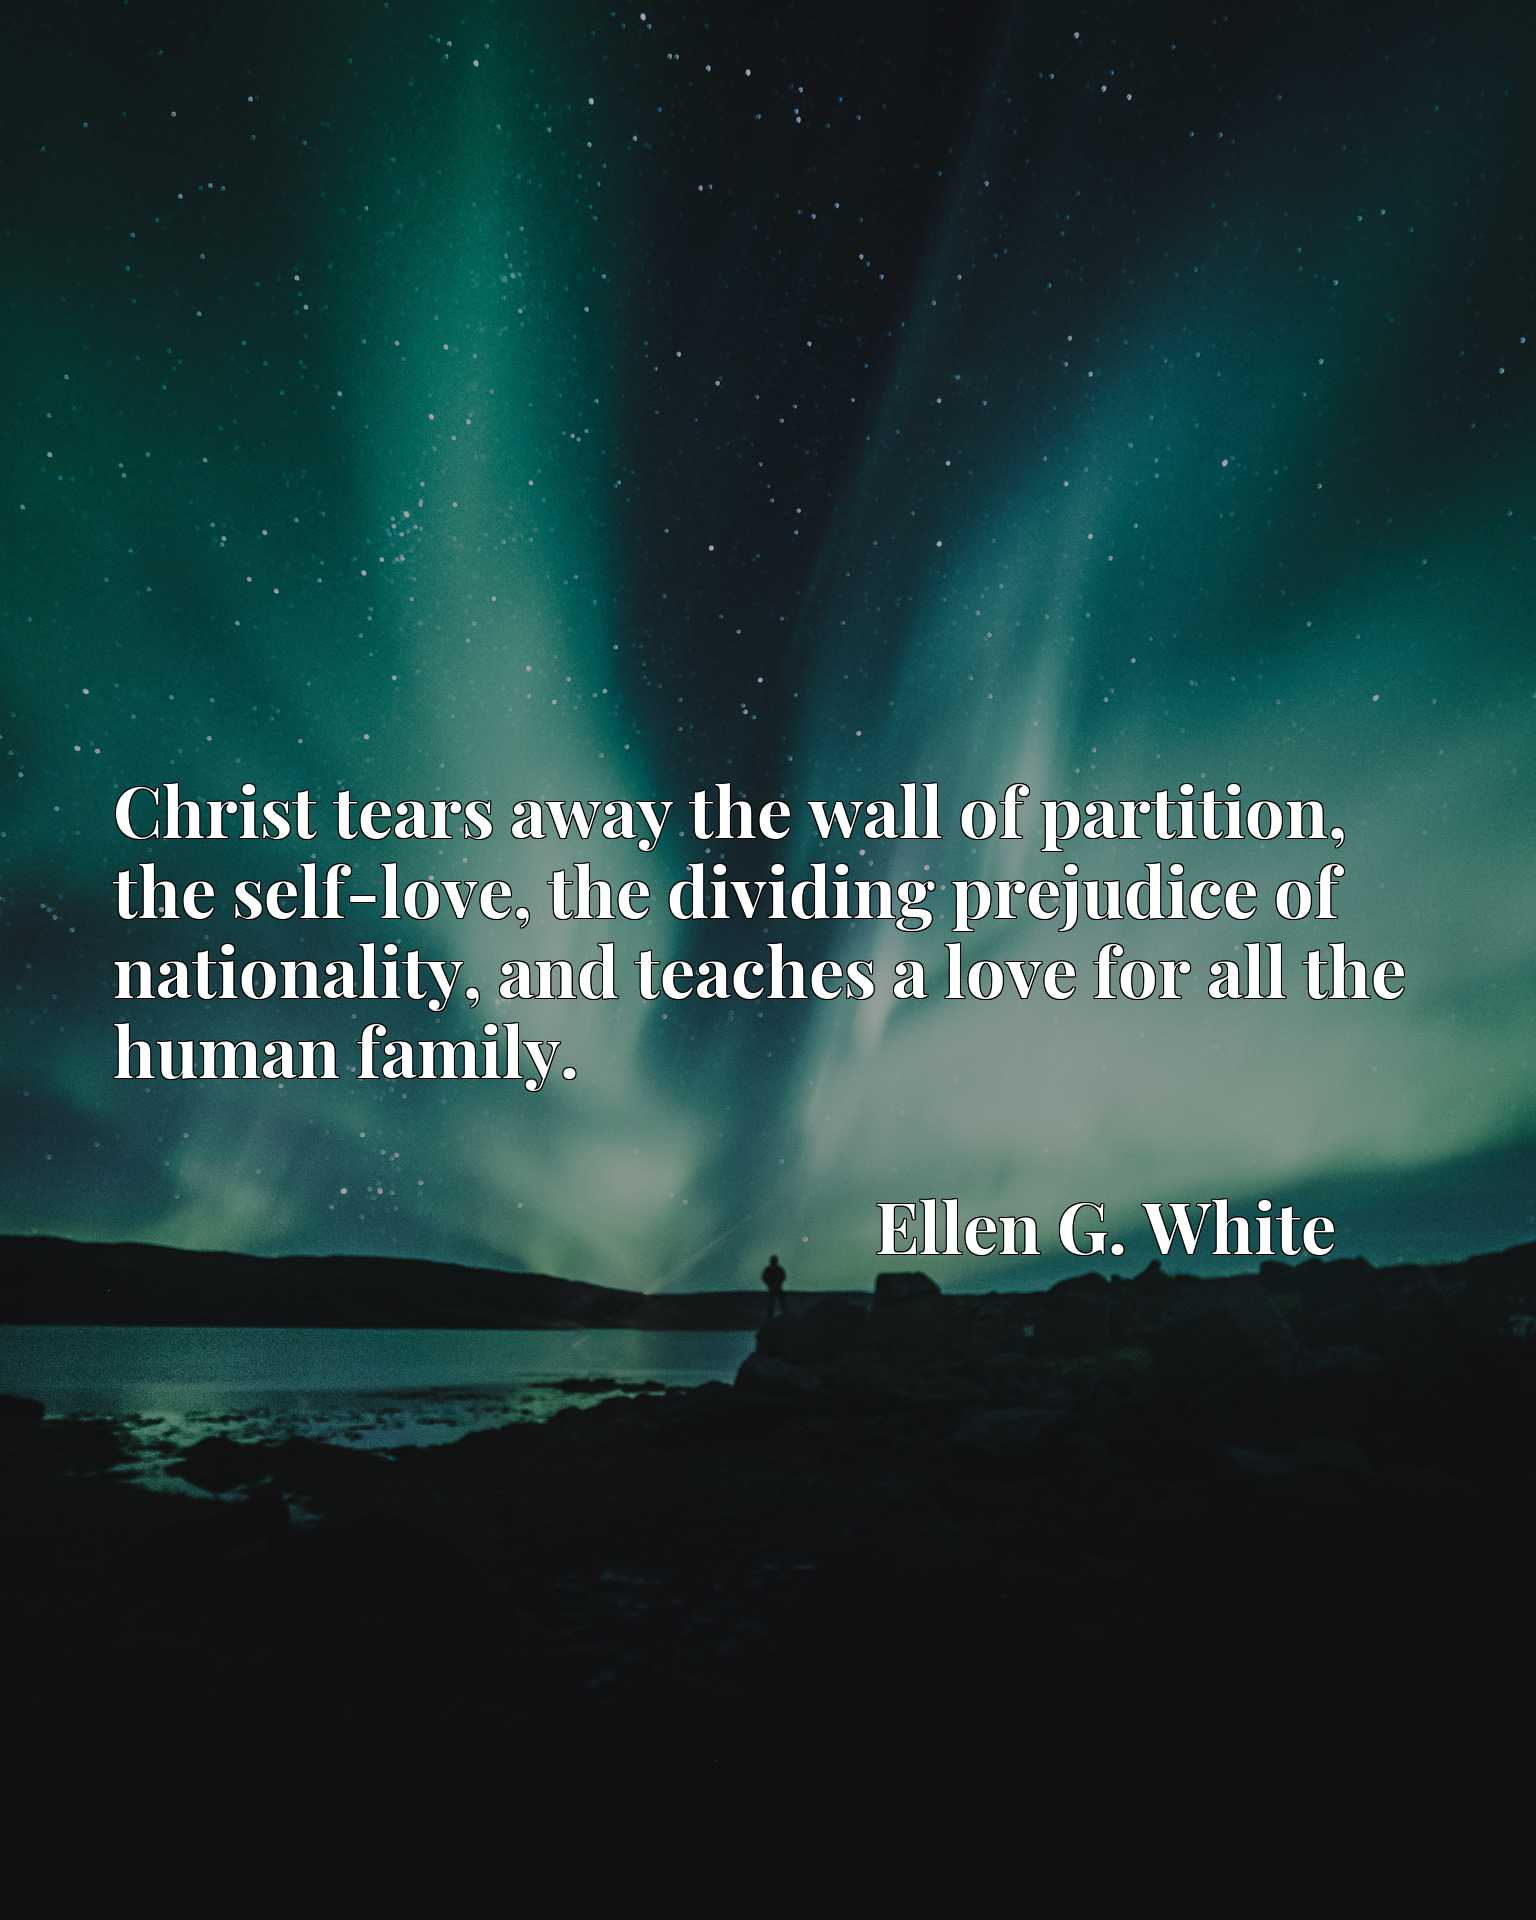 Christ tears away the wall of partition, the self-love, the dividing prejudice of nationality, and teaches a love for all the human family.